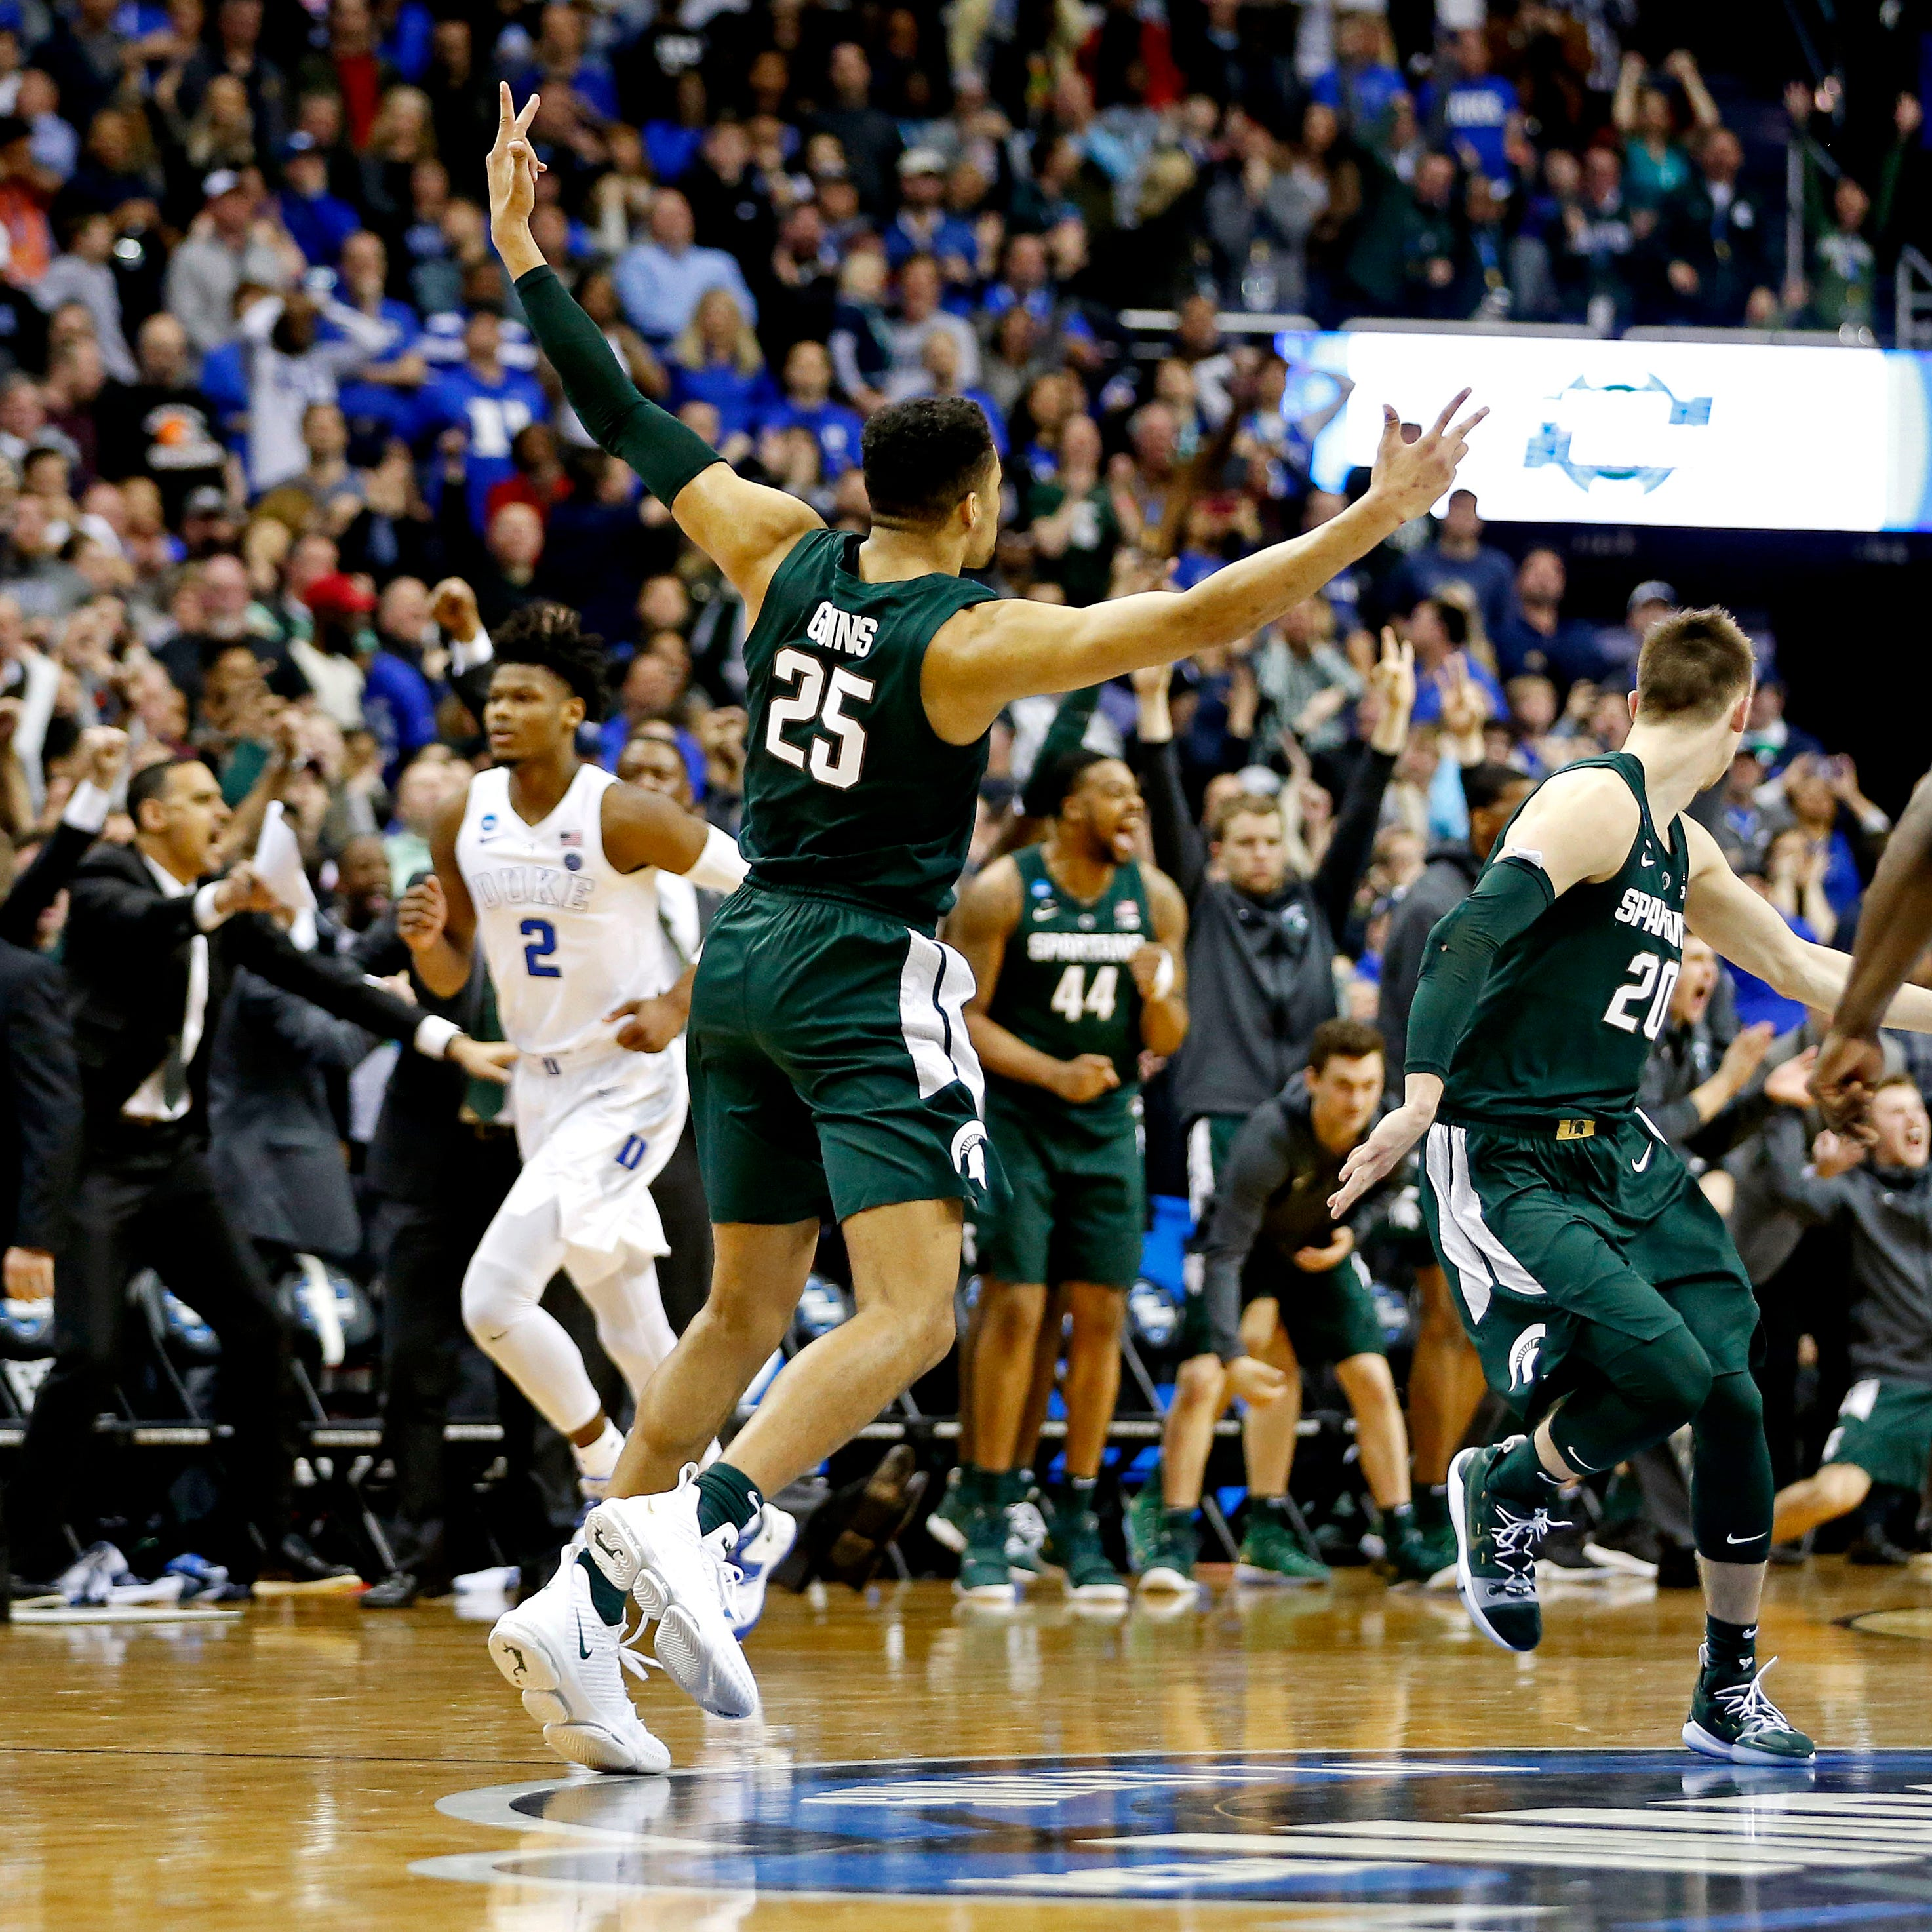 Tom Izzo drew up the play of his life. Then Michigan State stunned Duke